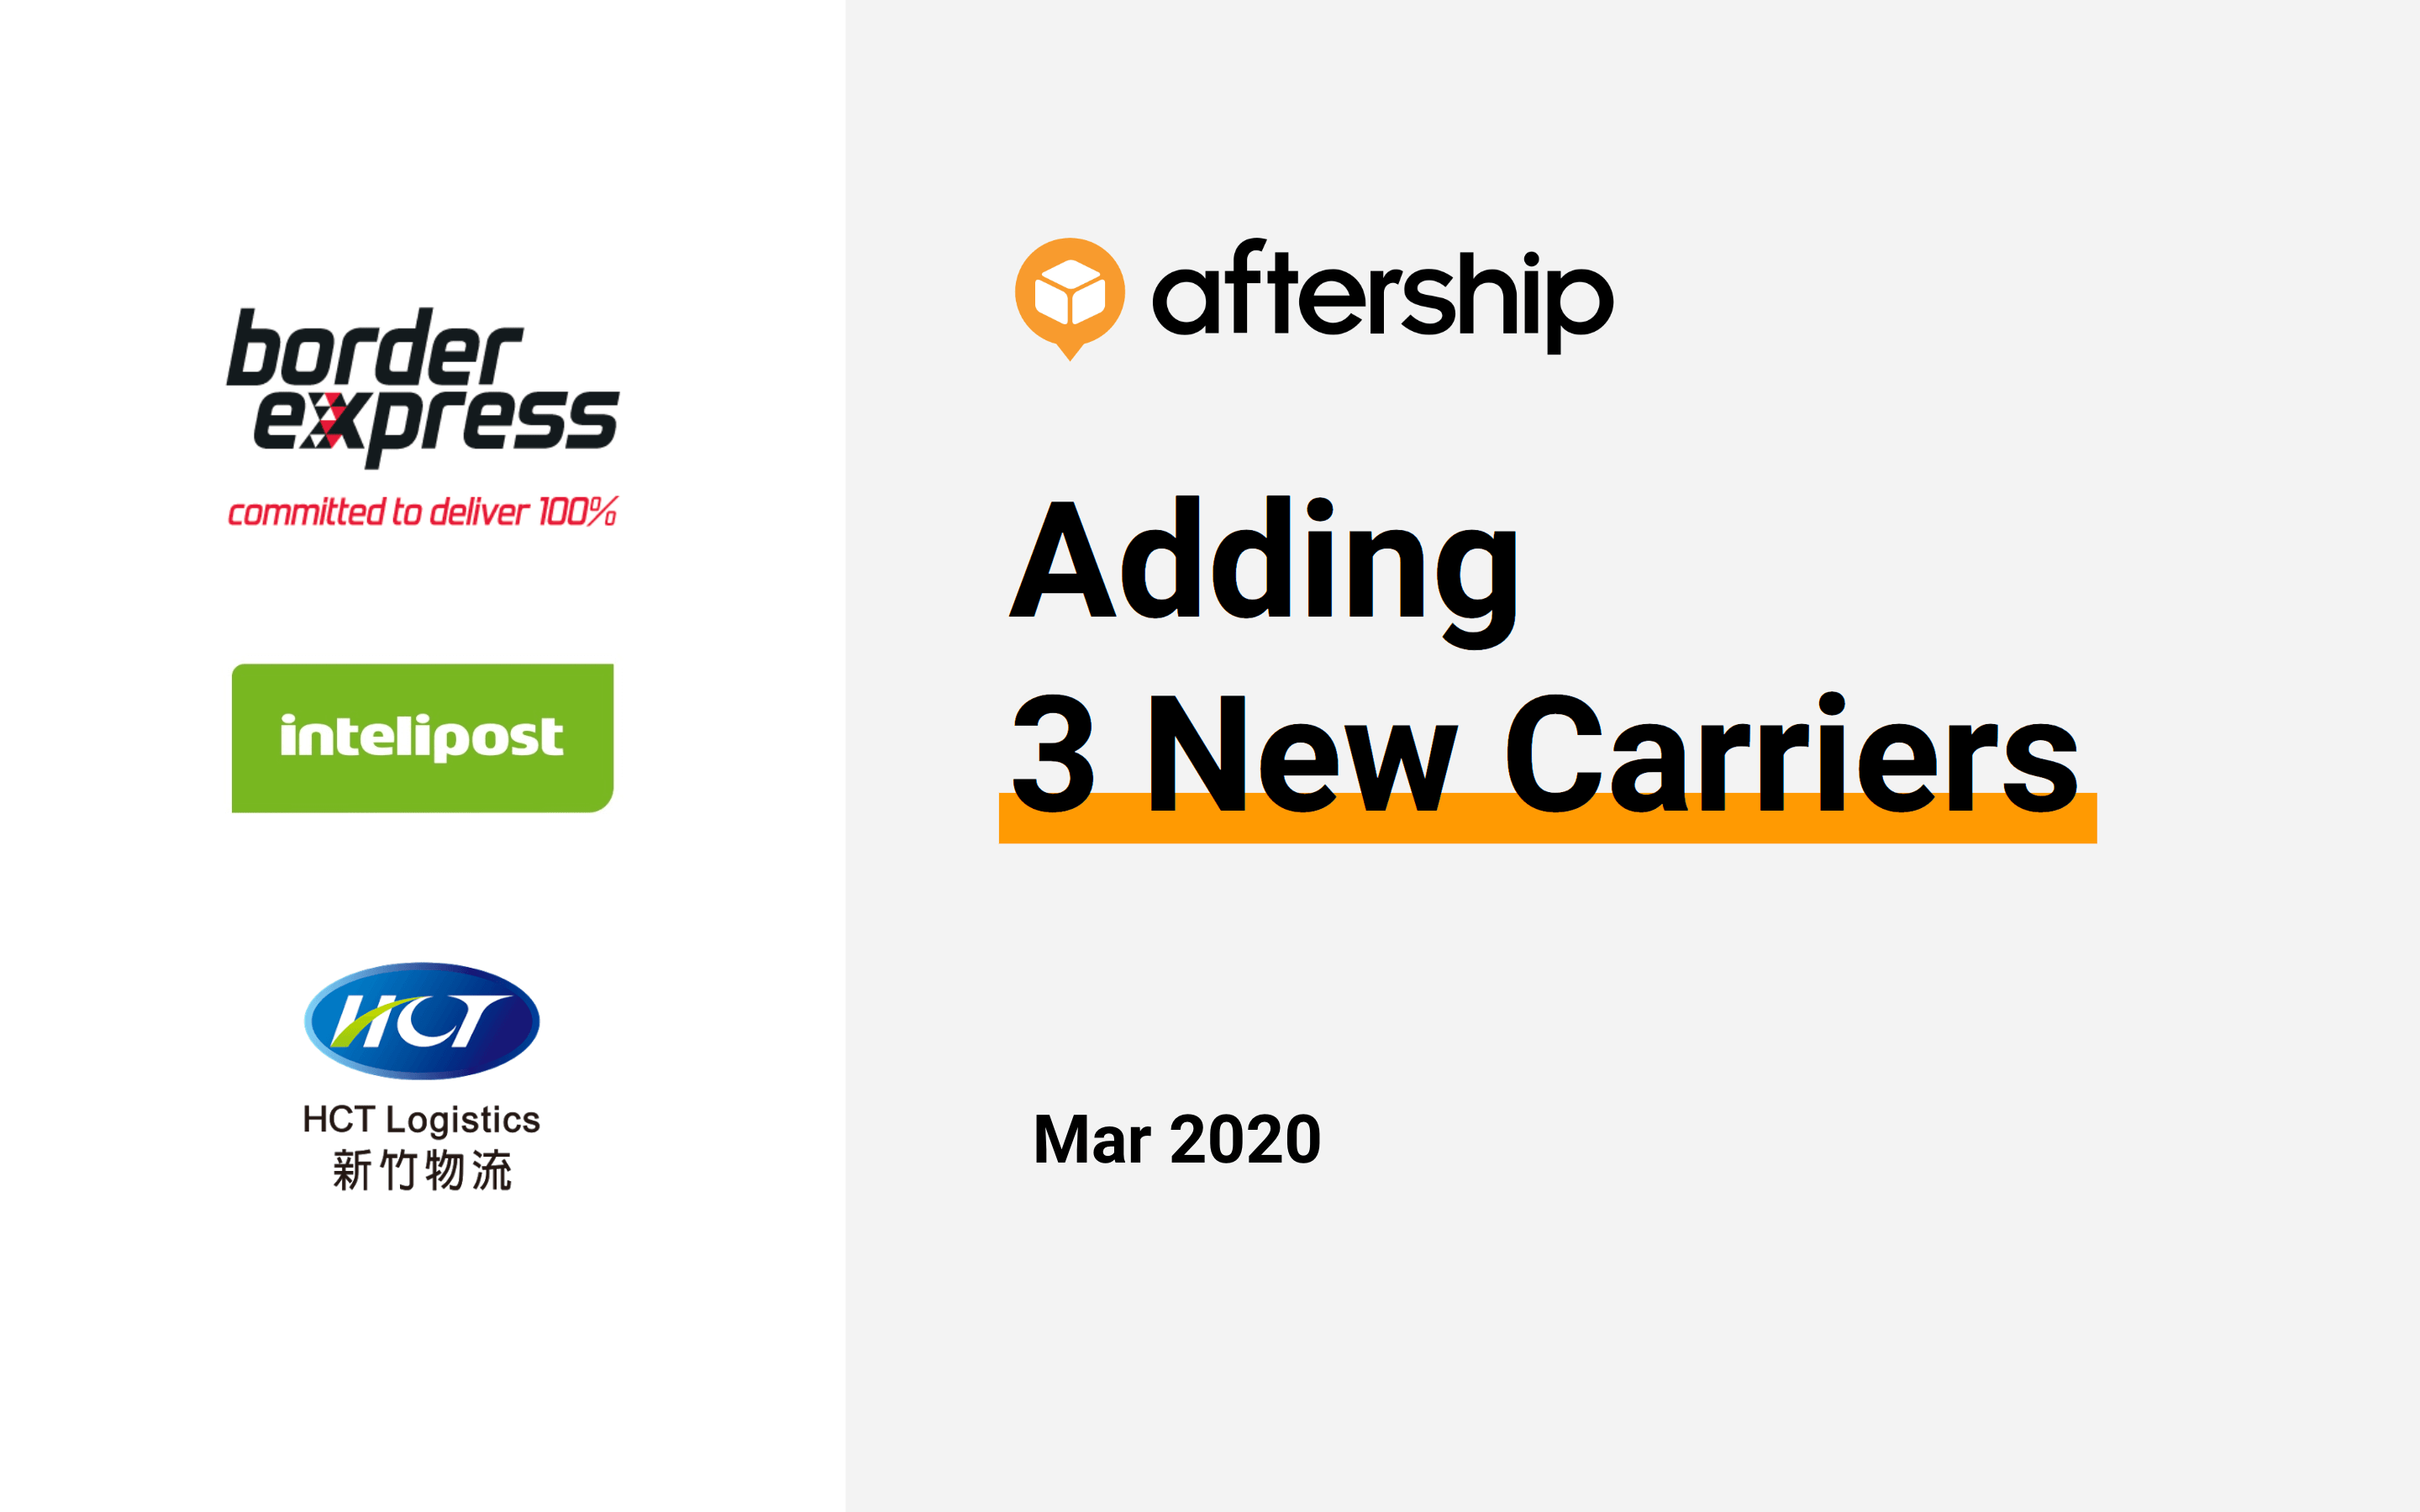 AfterShip added 3 new carriers last week (2 Mar 2020 to 8 Mar 2020)